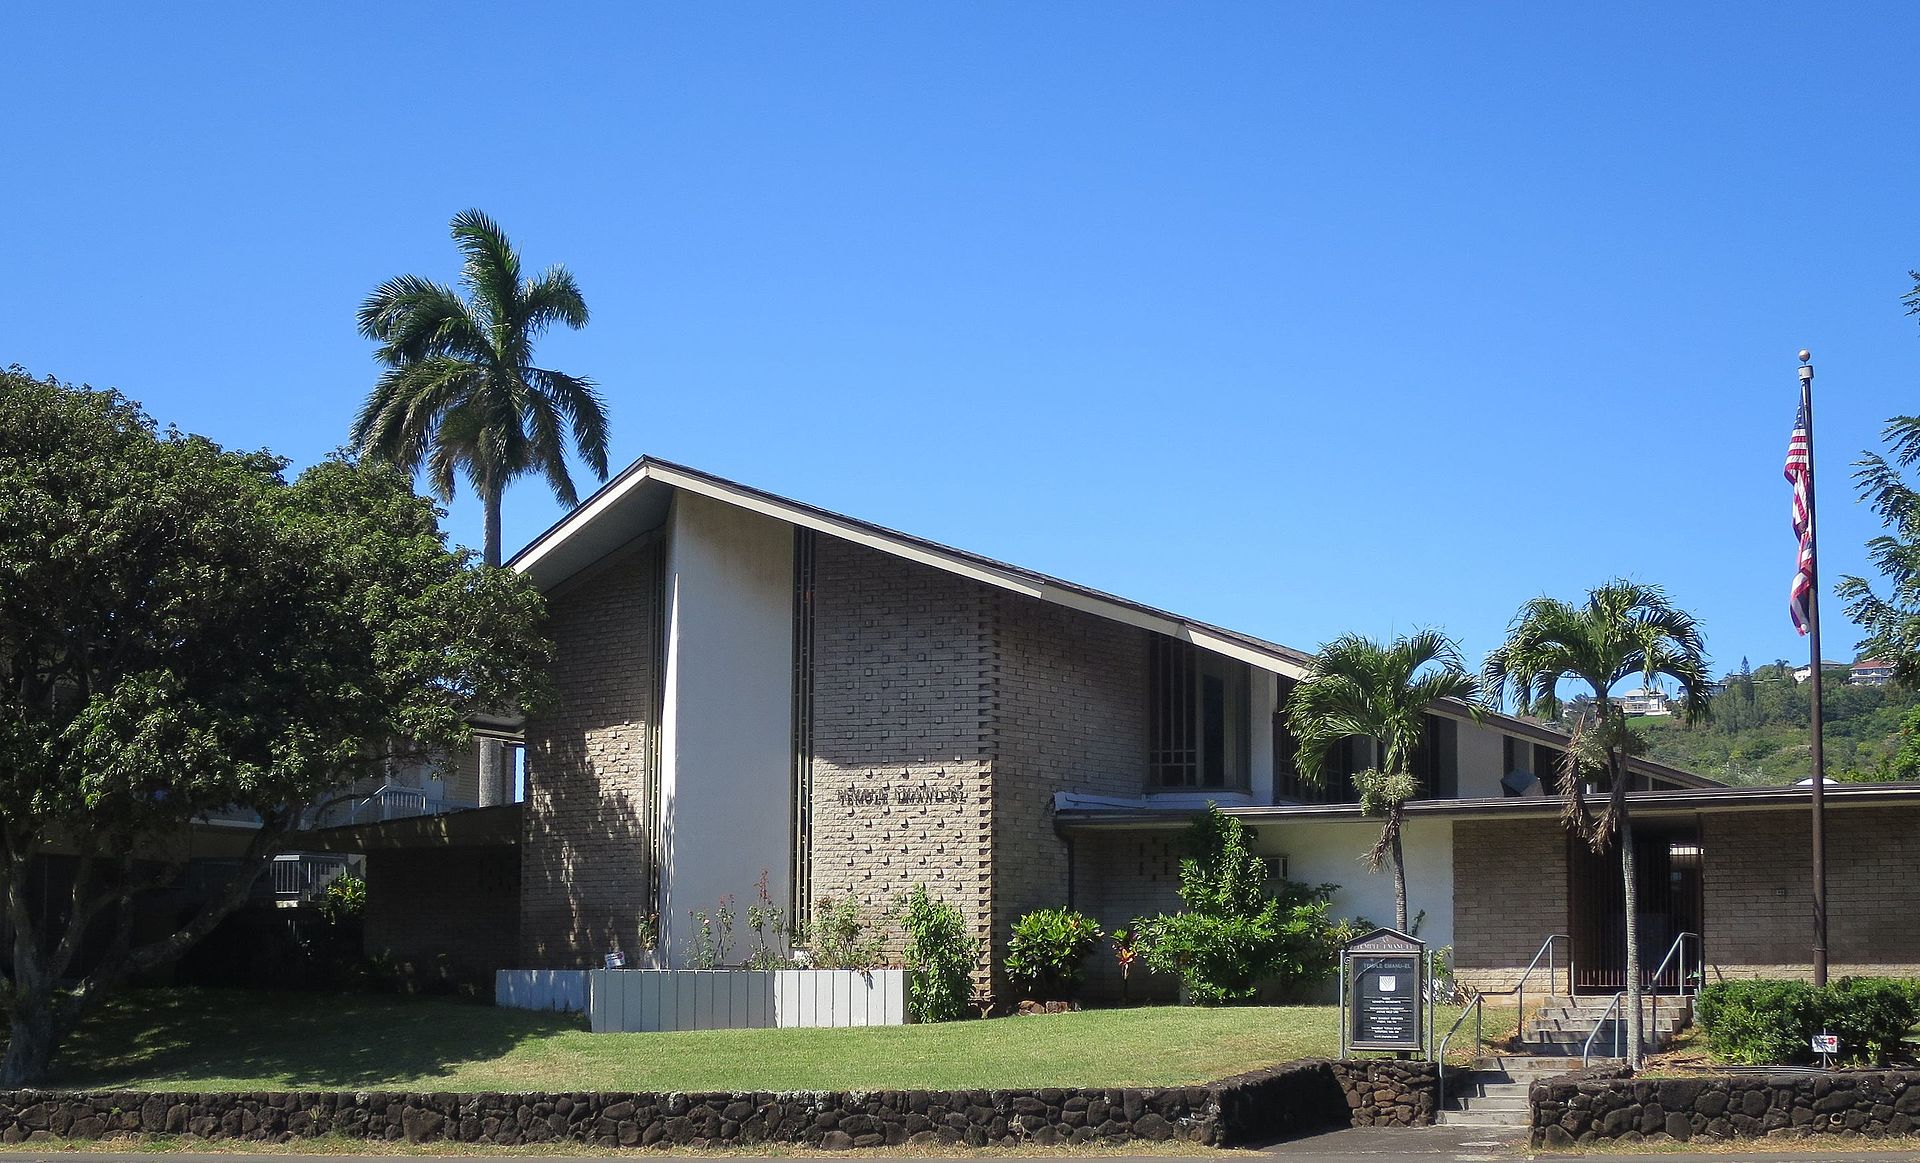 Temple Emanu-El was built in 1960 and was the first synagogue constructed from the ground up in Hawaii.